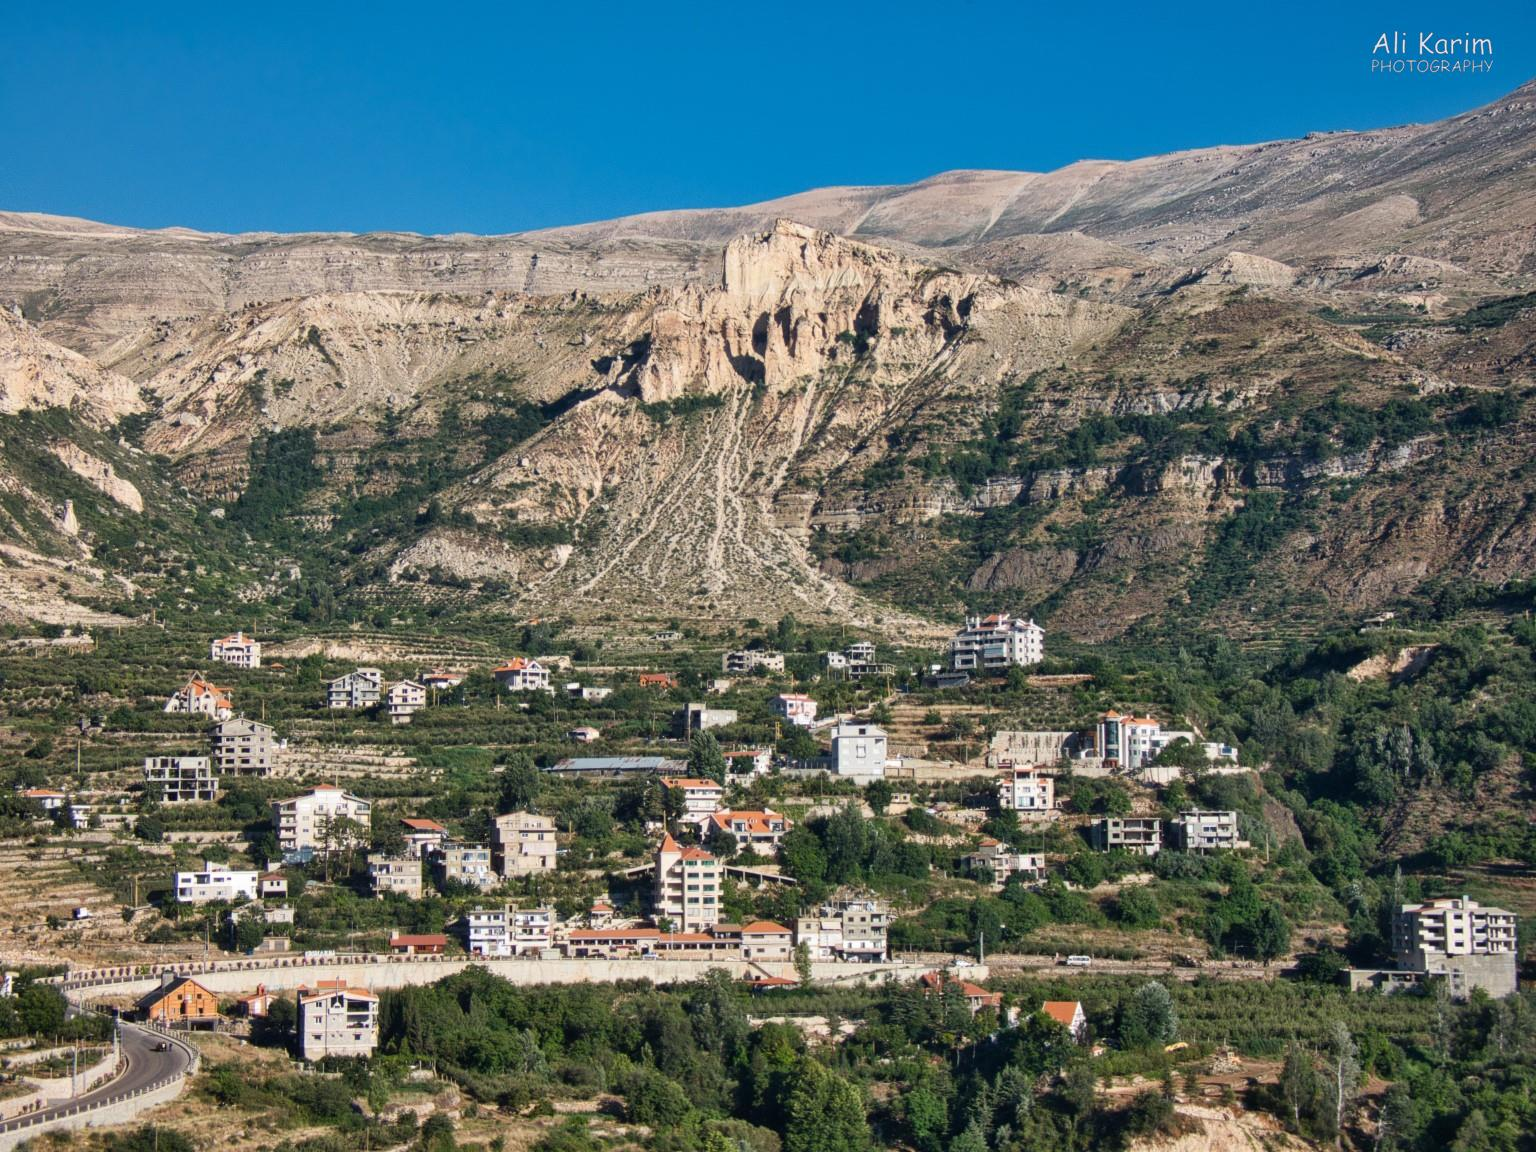 Bsharri and Quadisha Valley Multiple small communities along the way, on the mountainside